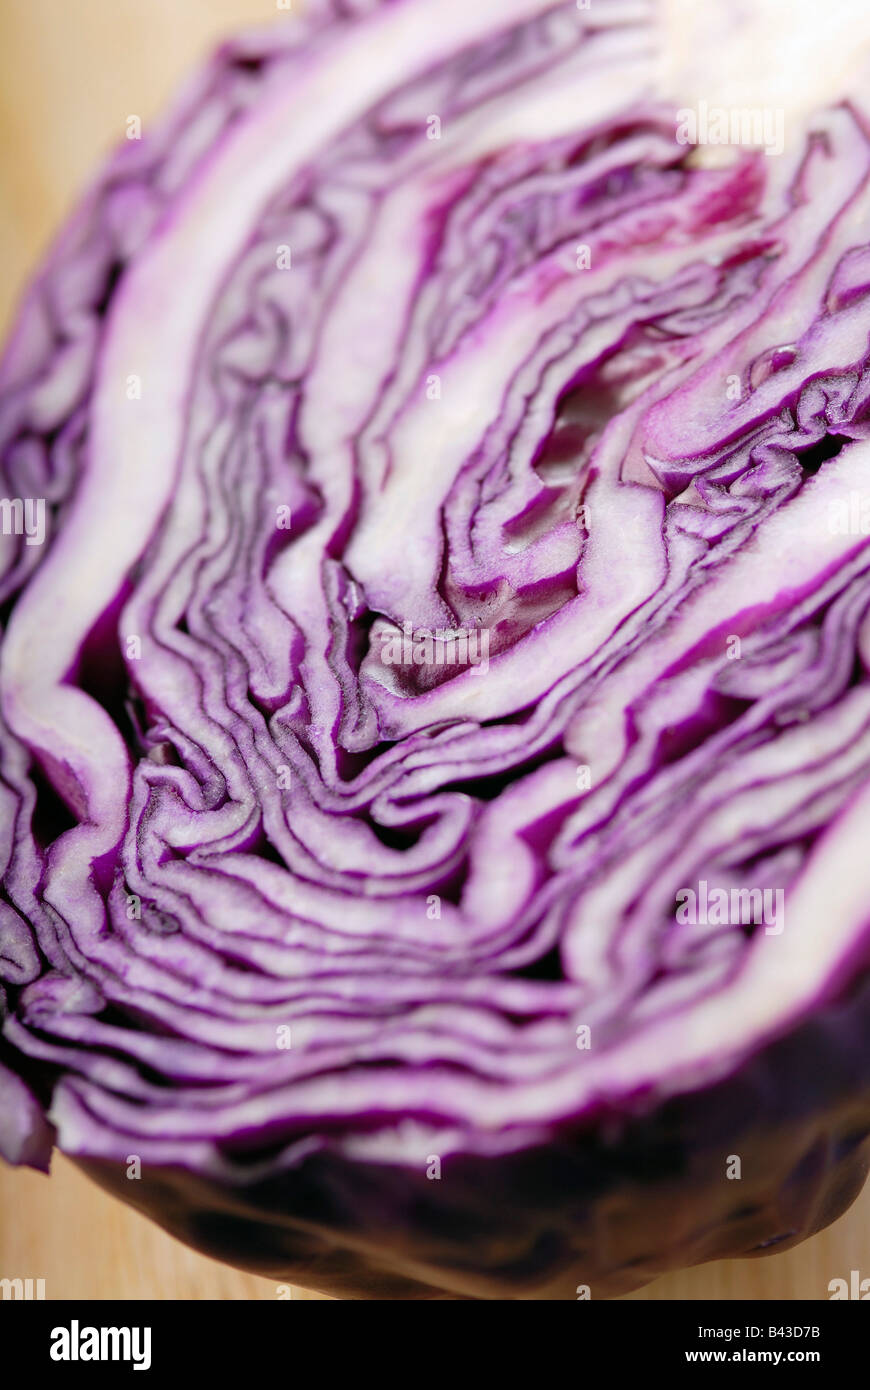 Close-up of a red cabbage - Stock Image